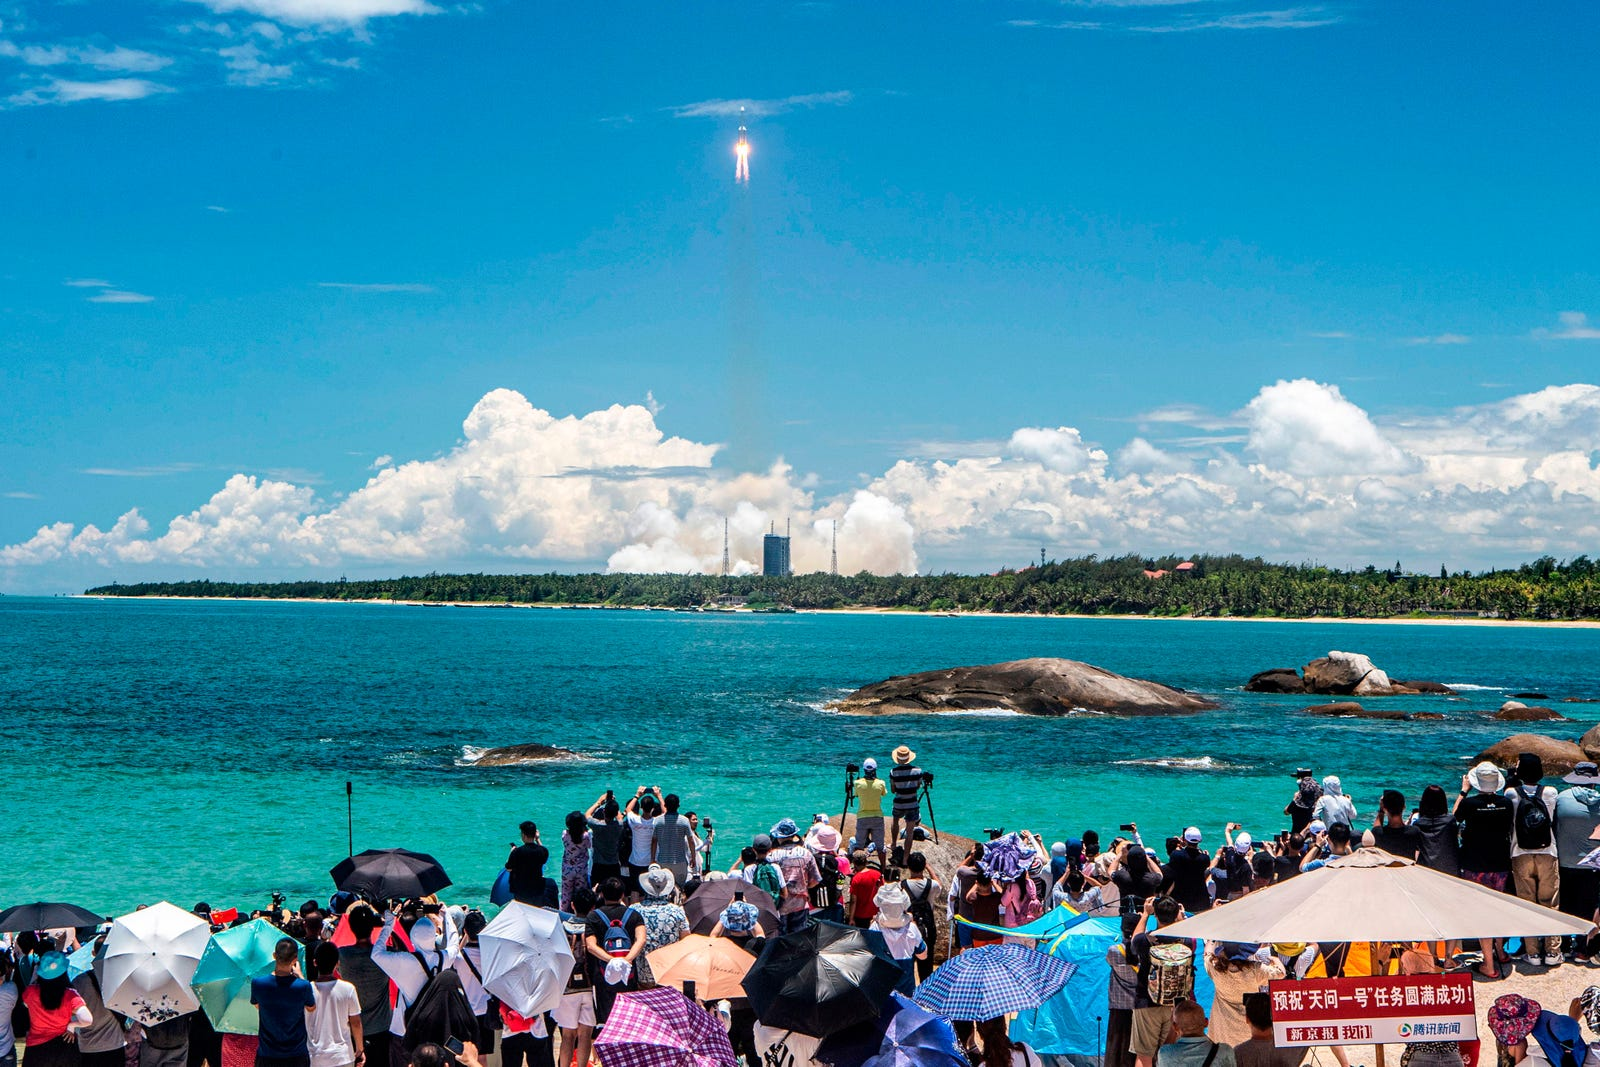 People watch a Long March-5 rocket, carrying an orbiter, lander and rover as part of the Tianwen-1 mission to Mars, lifting off from the Wenchang Space Launch Center in southern China's Hainan Province on July 23, 2020.